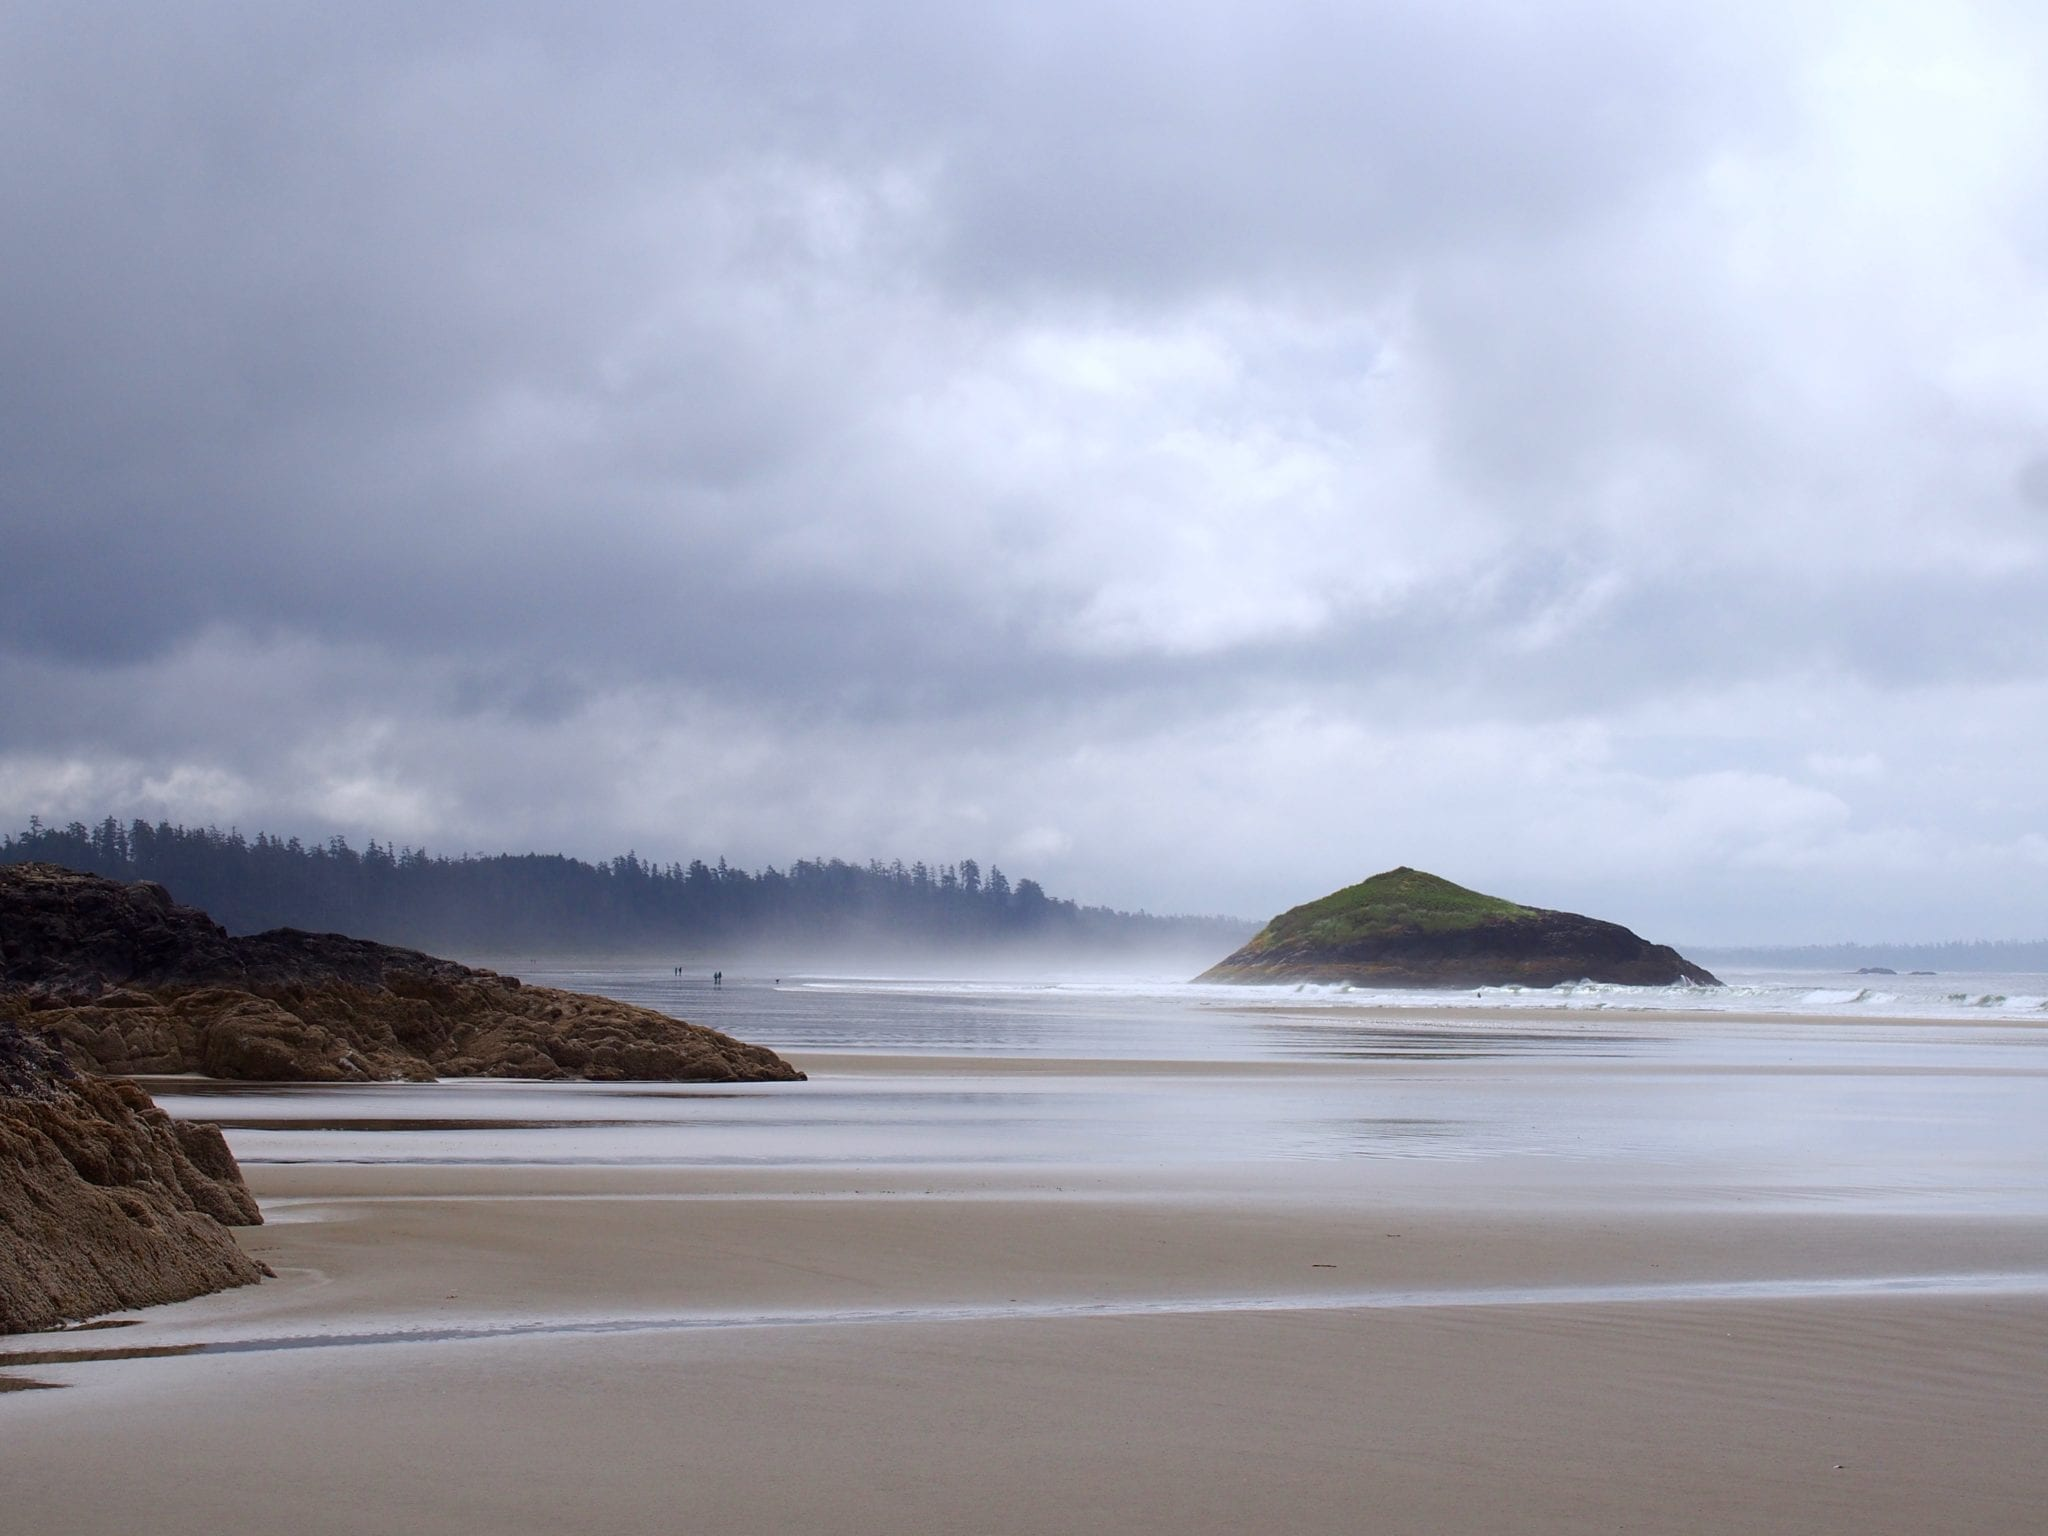 Tofino Best Beaches